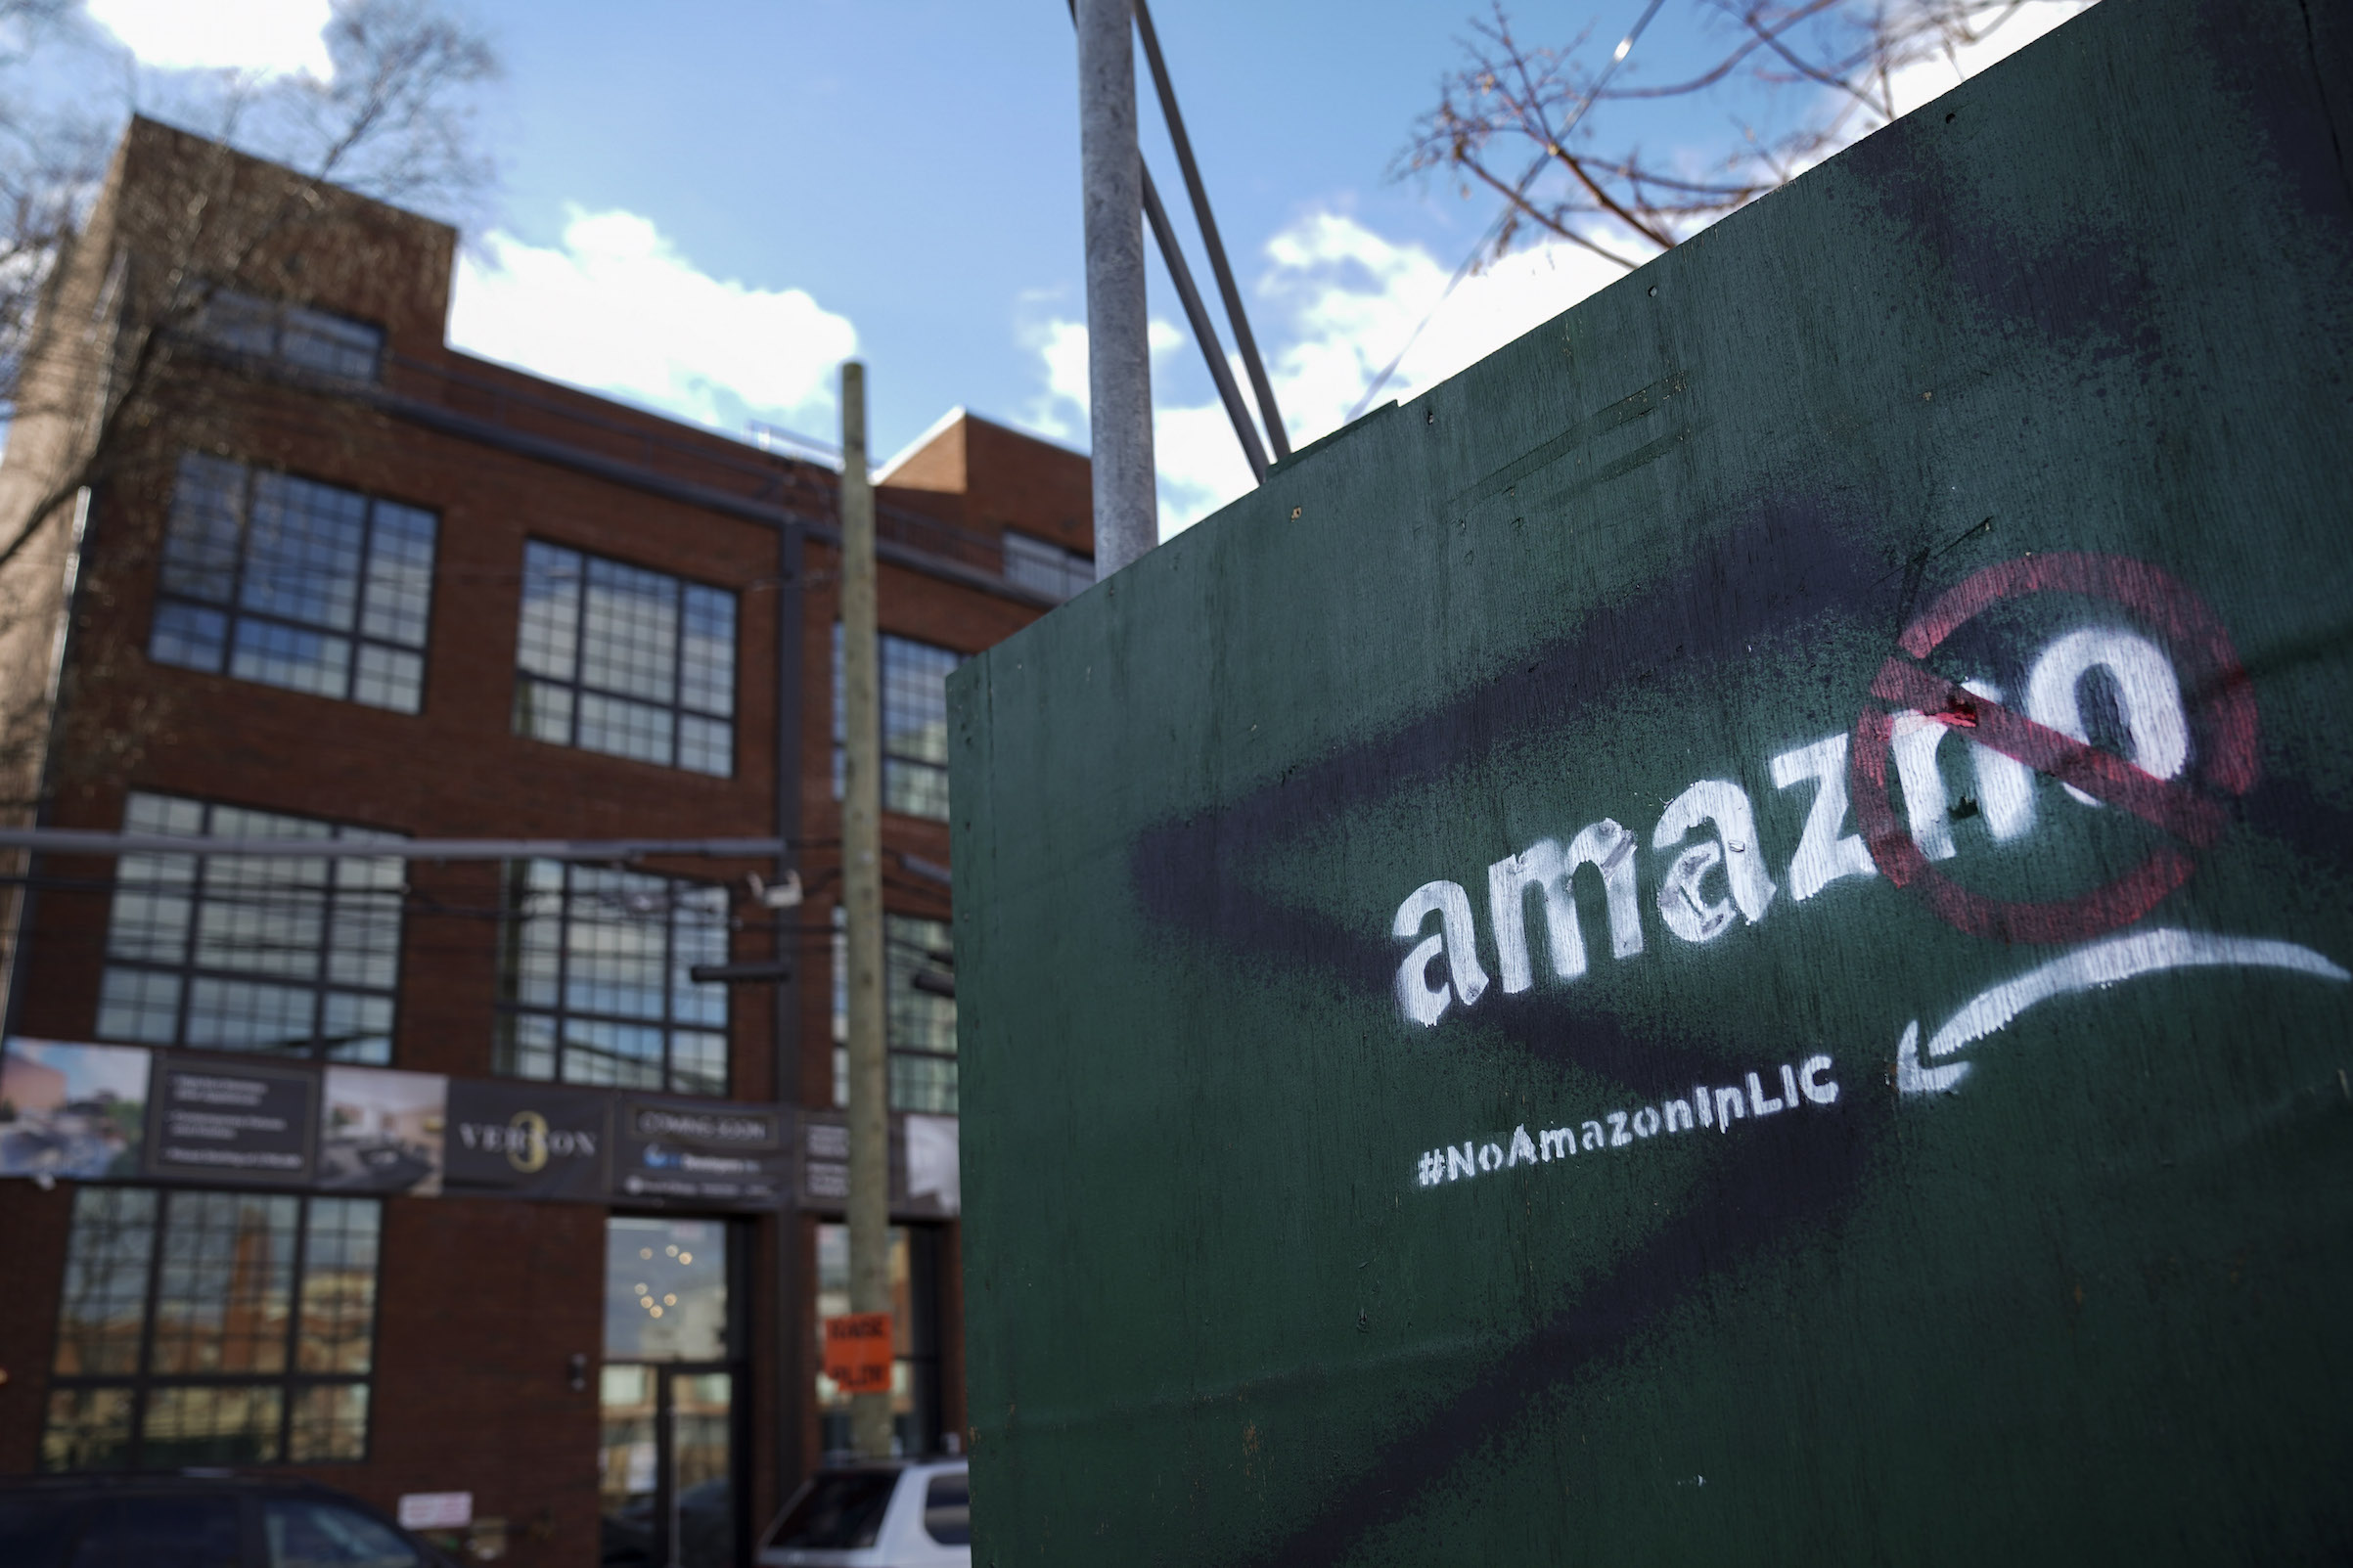 A protest message directed at Amazon is spray painted on a wall near a construction site Jan. 9, 2019, in the Long Island City neighborhood of the Queens borough of New York City.